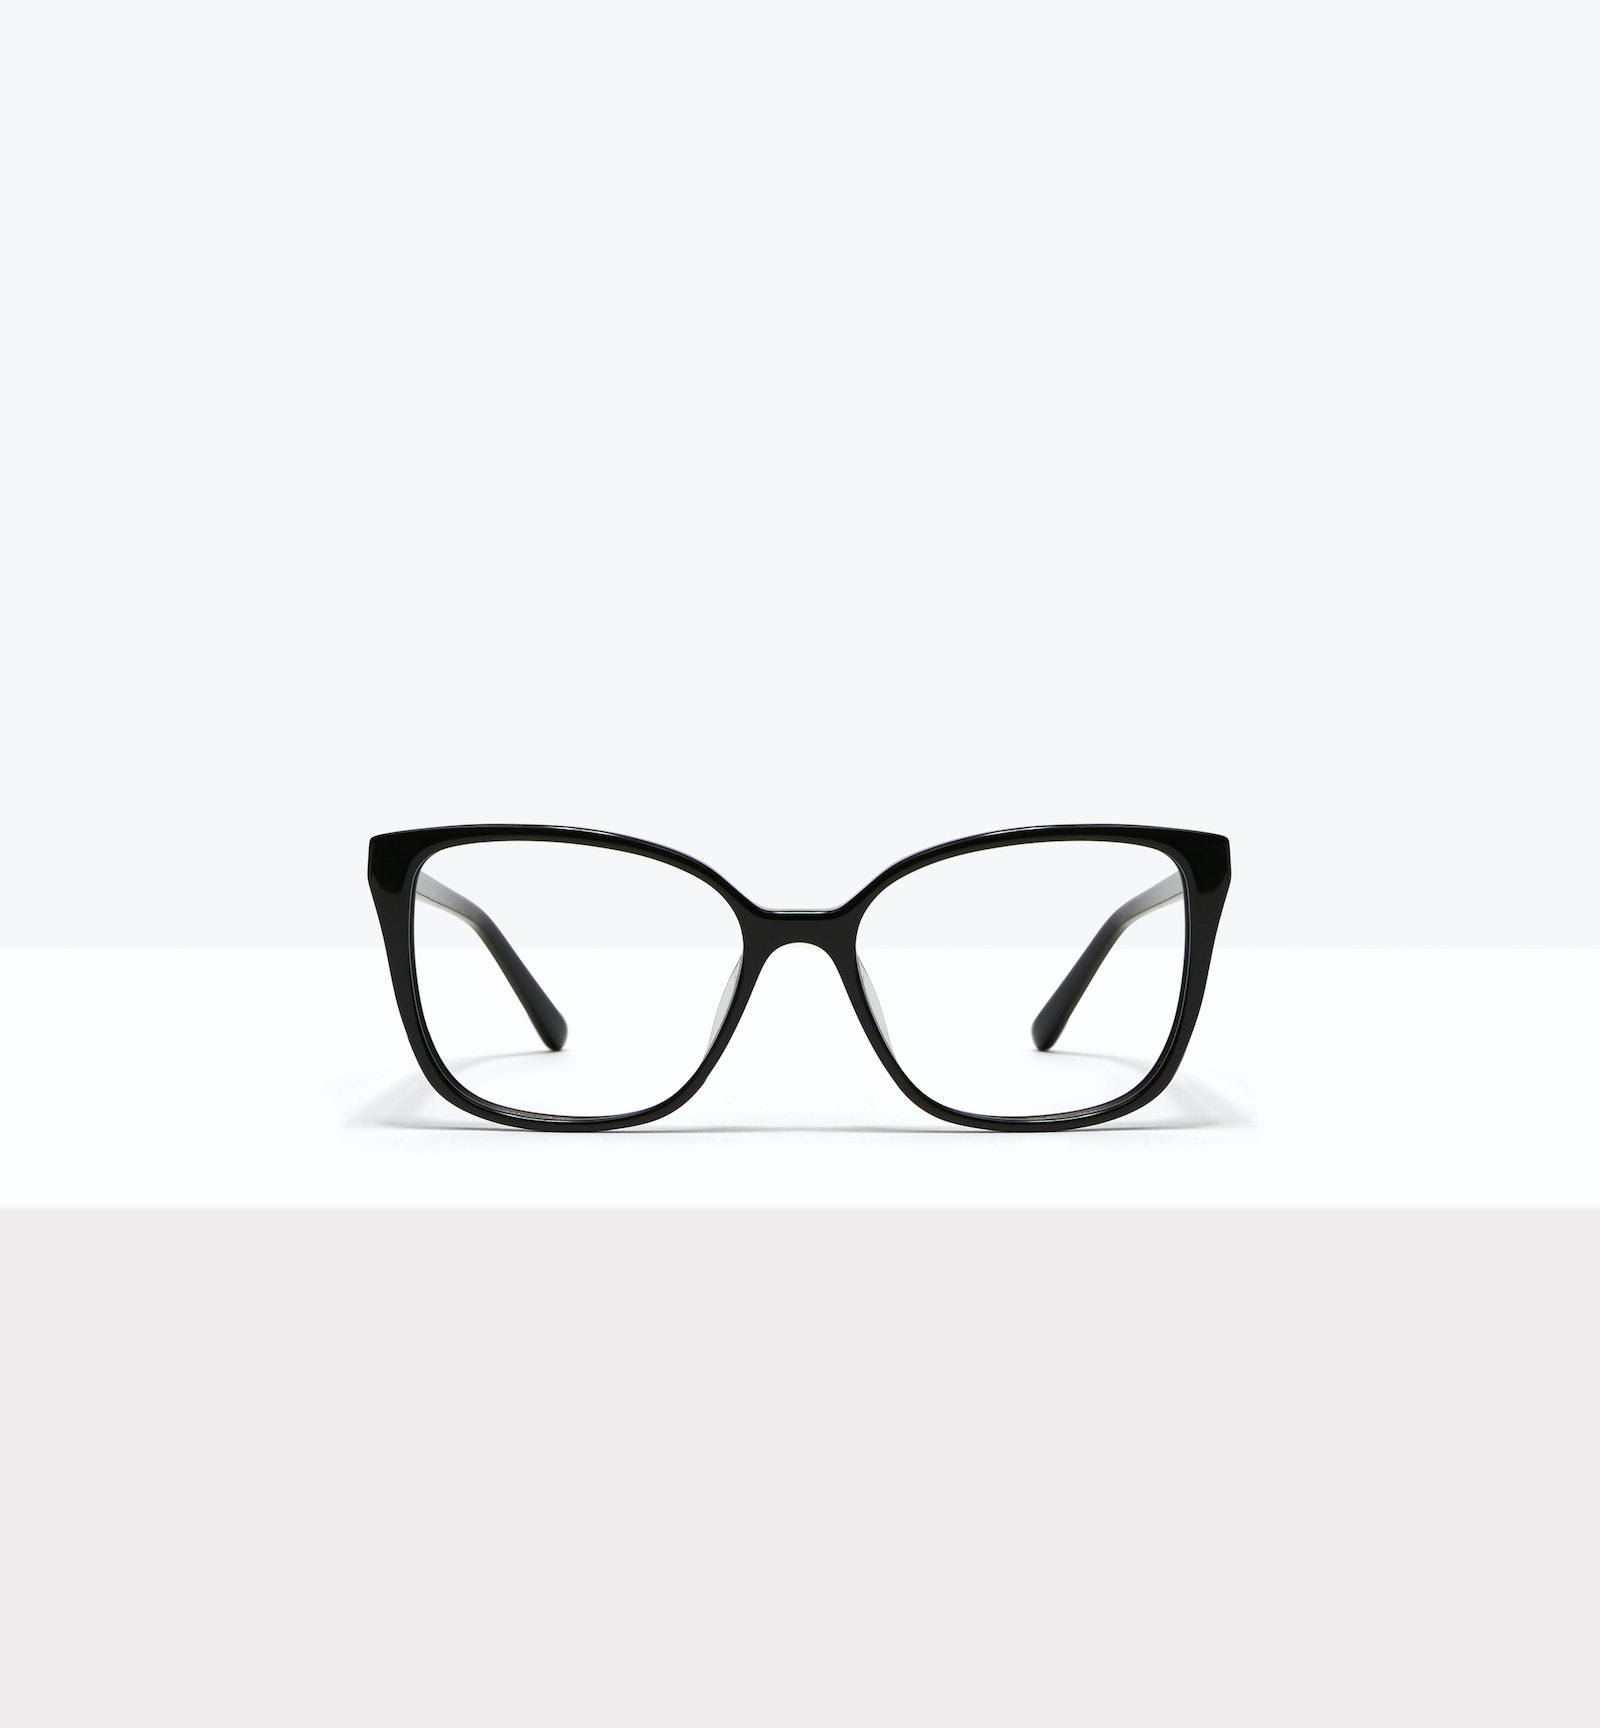 Affordable Fashion Glasses Square Eyeglasses Women Only Onyx